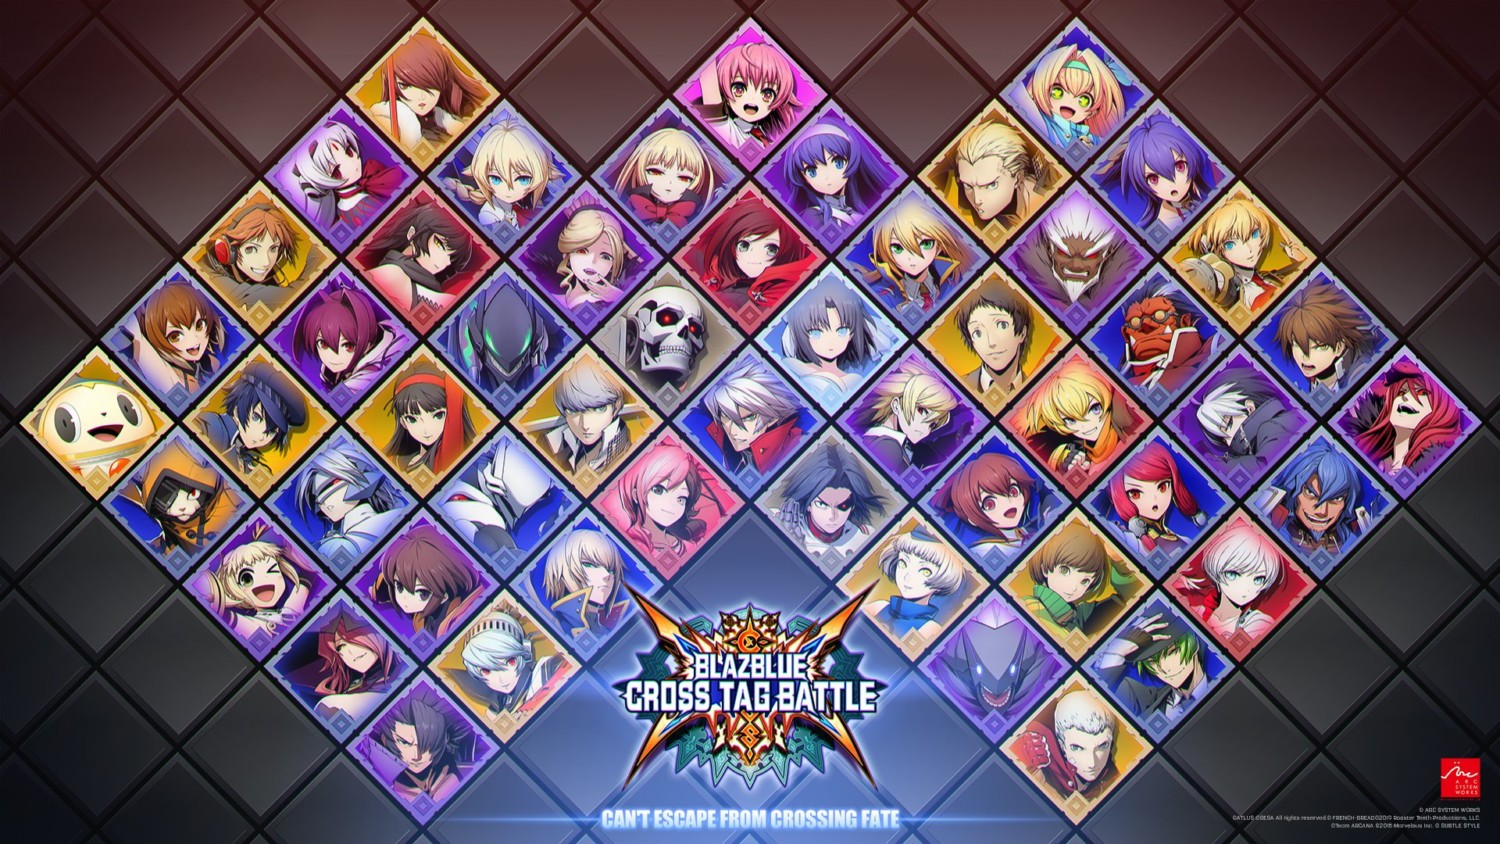 Blazblue Cross Tag Battle On Switch eShop Will Be Replaced With Updated Special Edition